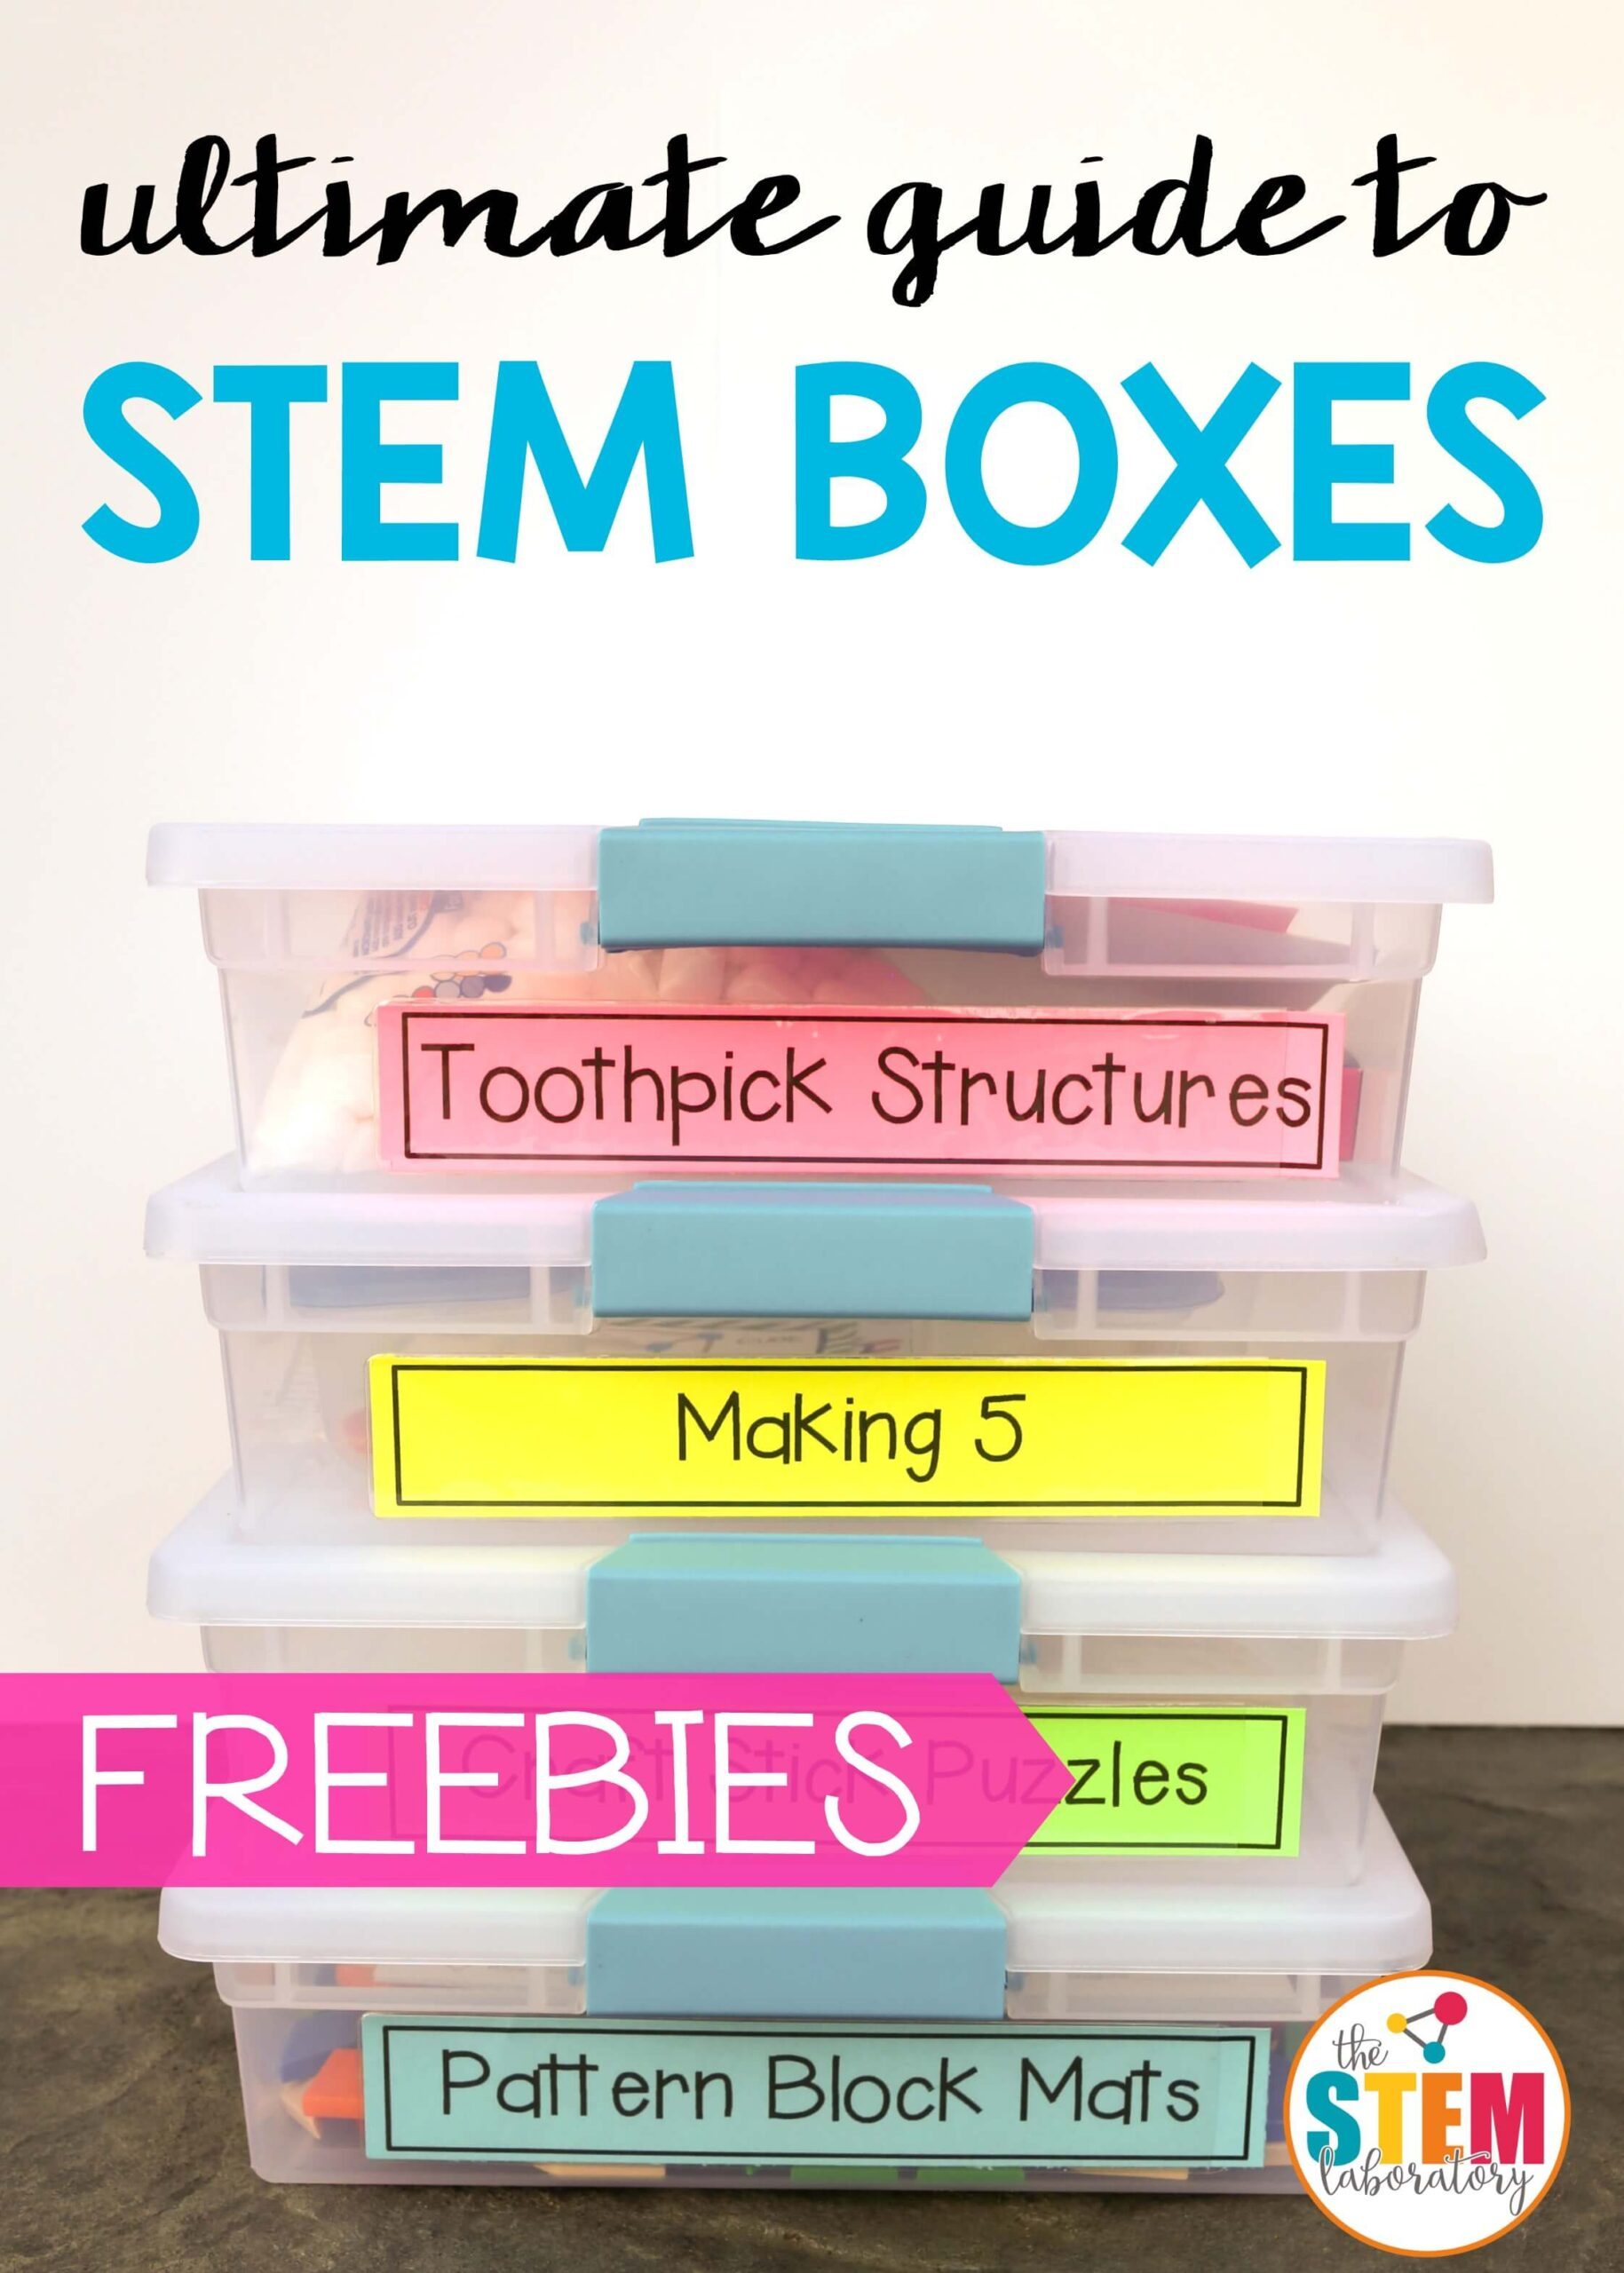 The Ultimate Guide To Stem Boxes The Stem Laboratory